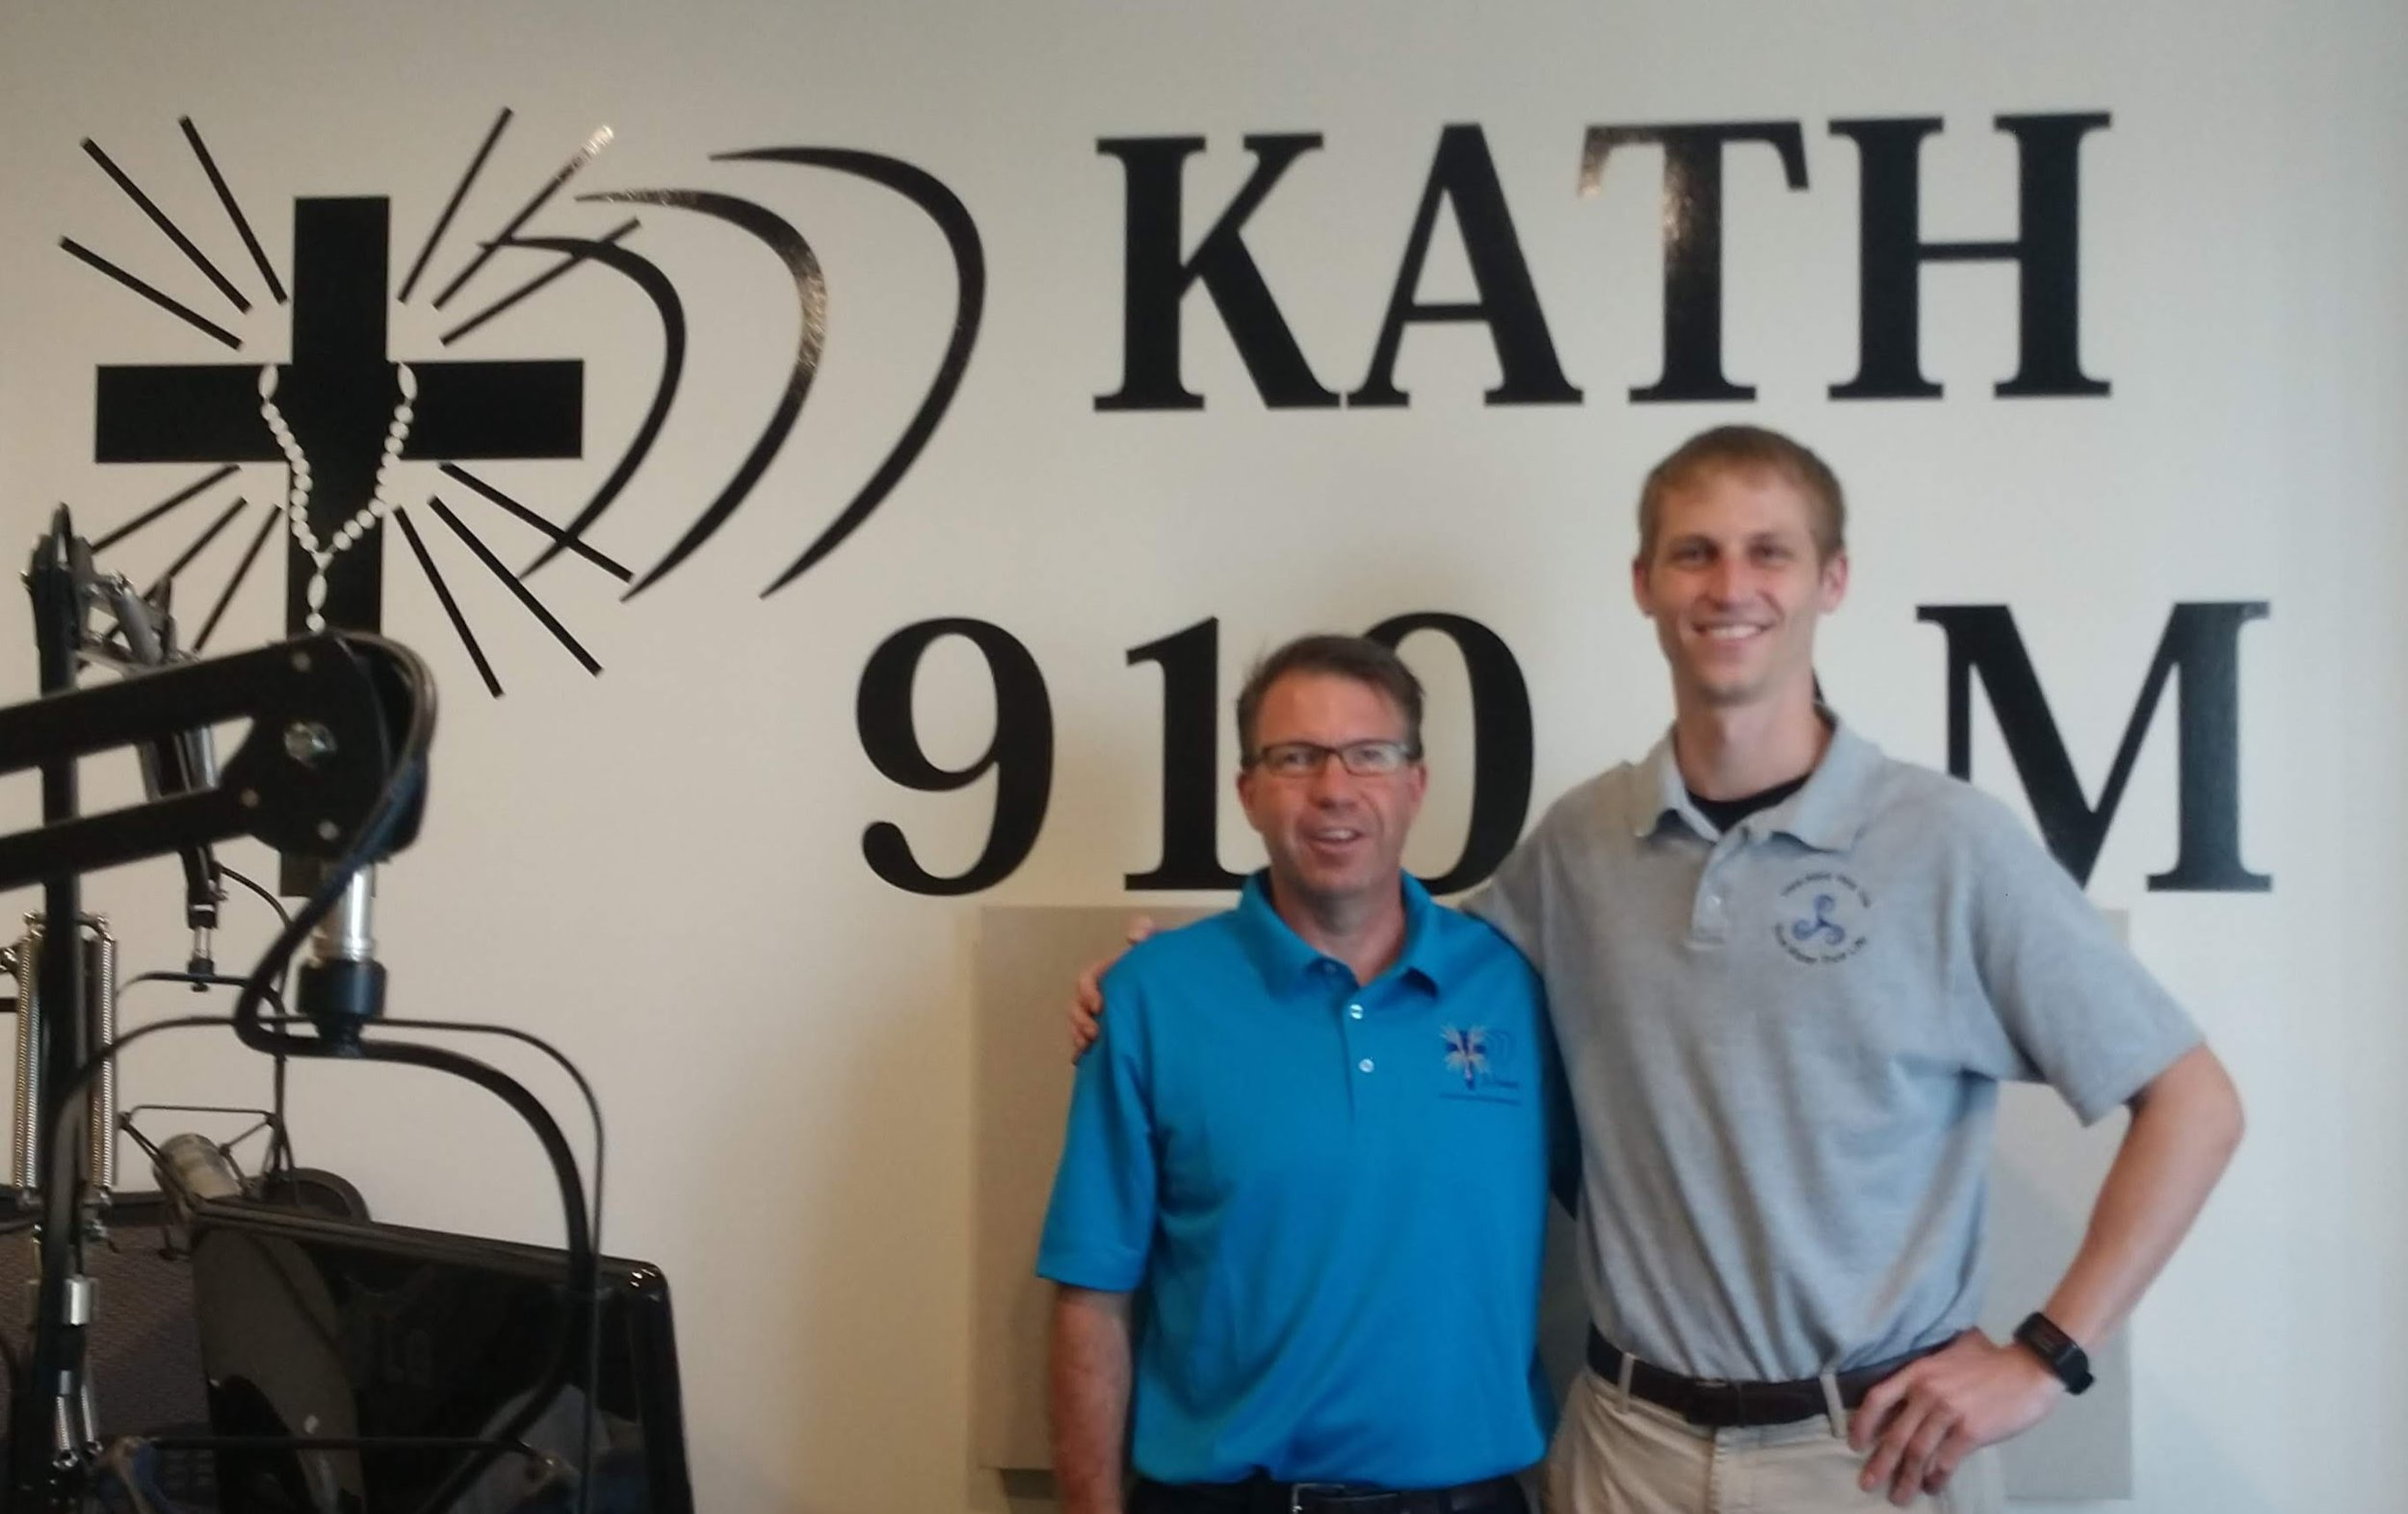 "KATH 910AM Radio Spot - 2019-07-30 | Dallas, Texas — For the 4th time in the past year, Jacob Niemeier, Executive Director of Vera Aqua Vera Vita visits with Dave Palmer on the Catholic Radio Station Gaudalupe Radio 910AM.In the interview he shares updates on VAVV's work in Monte Castillo, Peru and what the future of VAVV looks like including a compelling invitation to attend their 2nd Annual Fundrase: ""An Evening at a Speakeasy!"" on Saturday, October 5th at 6pm at St. Paul's Parish Center in Richardson, Texas."